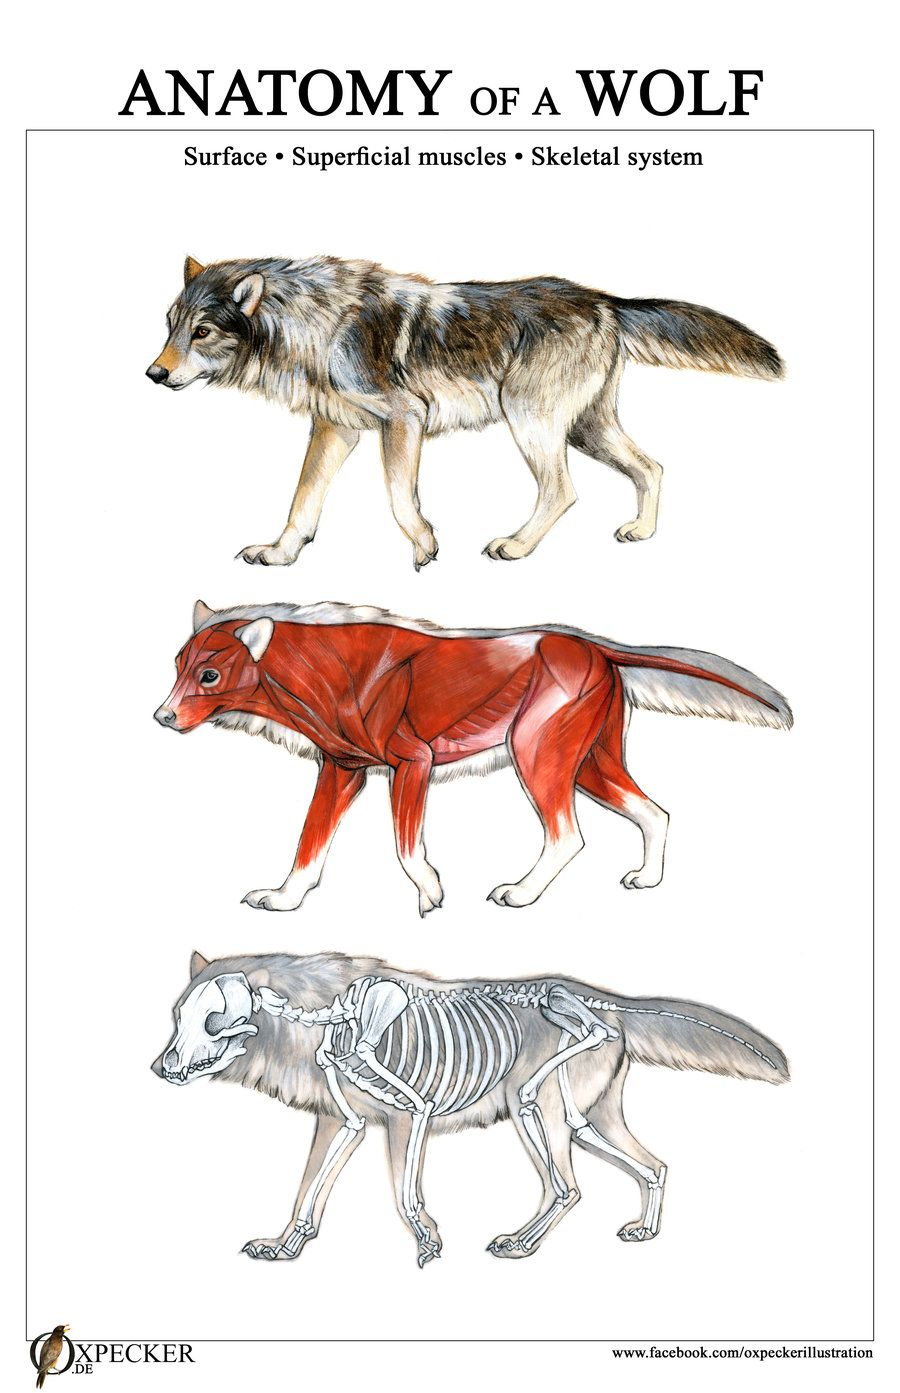 Anatomy of a Wolf by oxpecker - How to Art | lobos | Pinterest ...